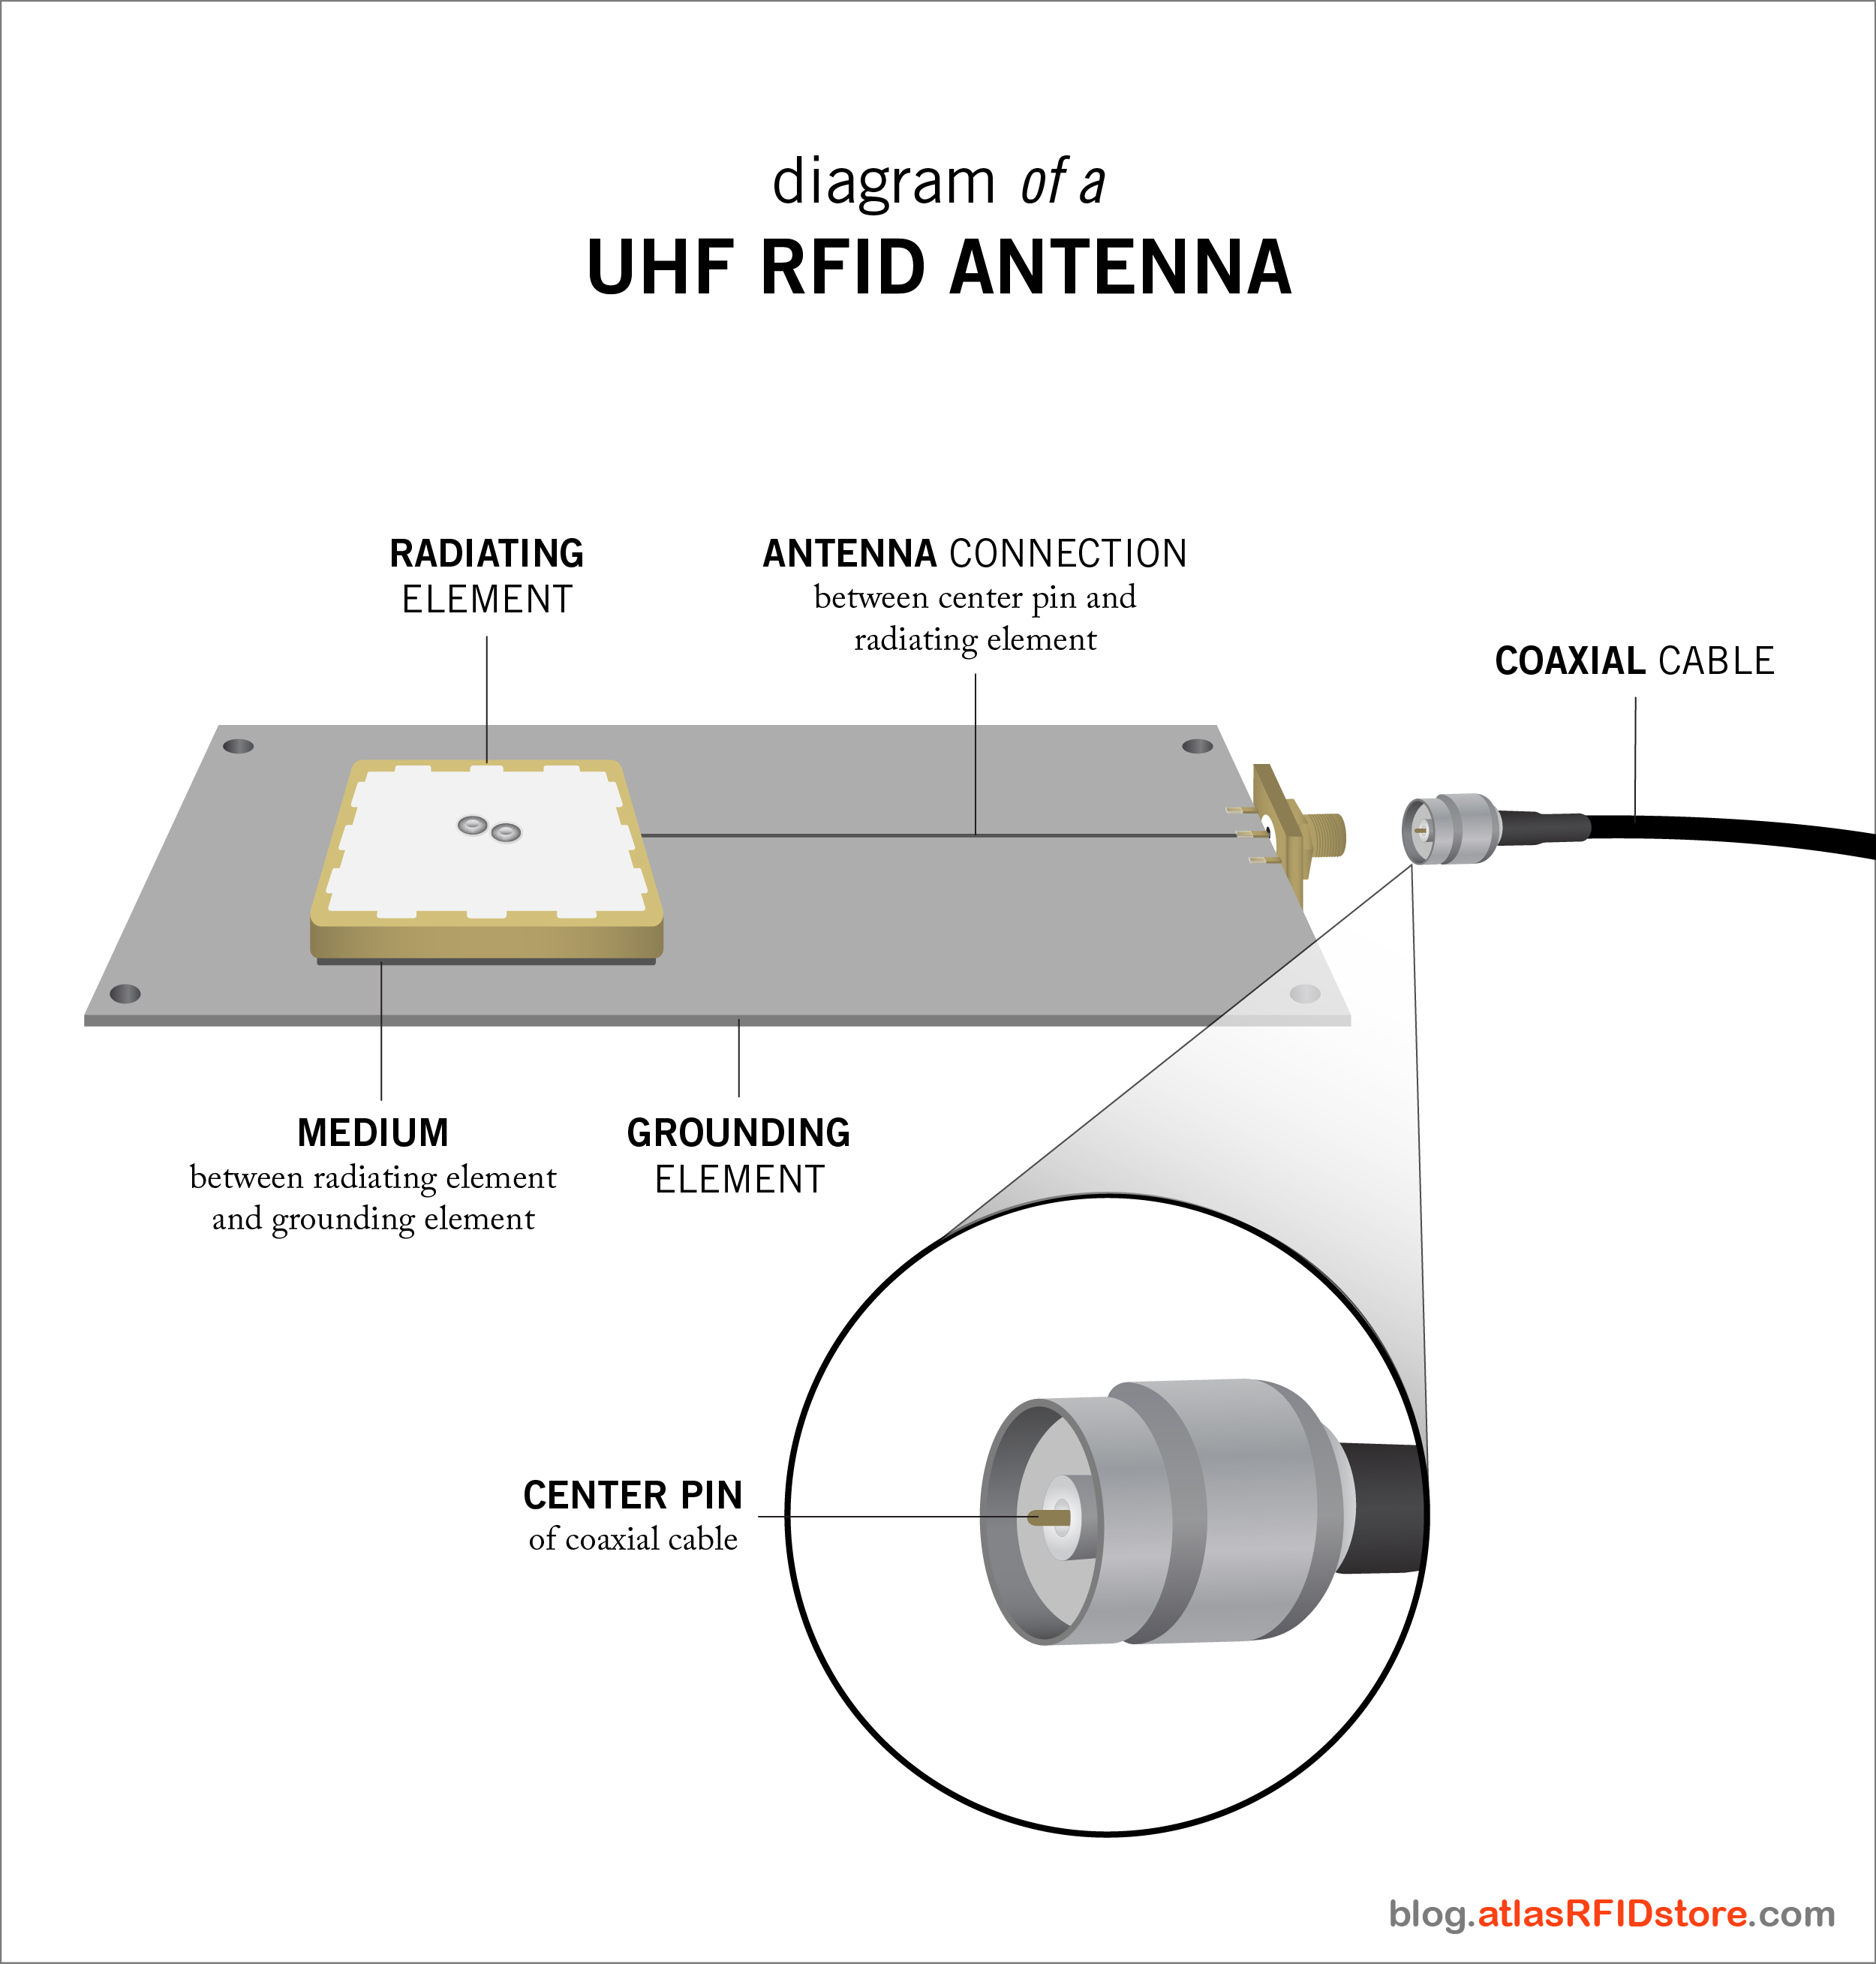 9 Tactics for Choosing an RFID Antenna - atlasRFIDstore